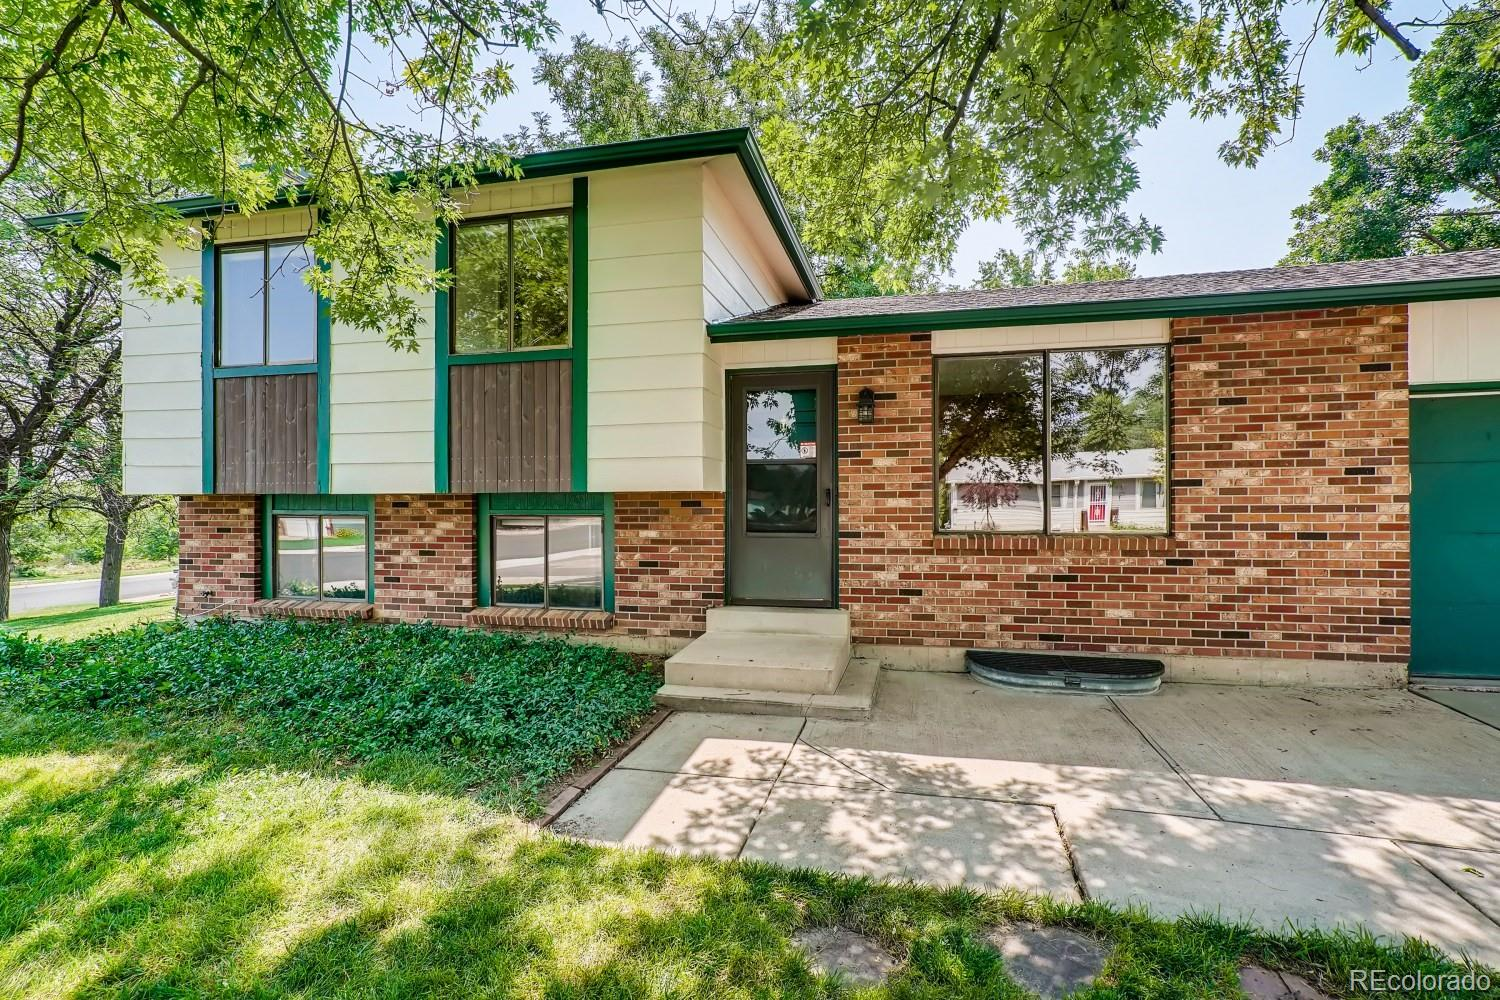 399 Jackson Circle, Louisville, CO  80027 - Featured Property